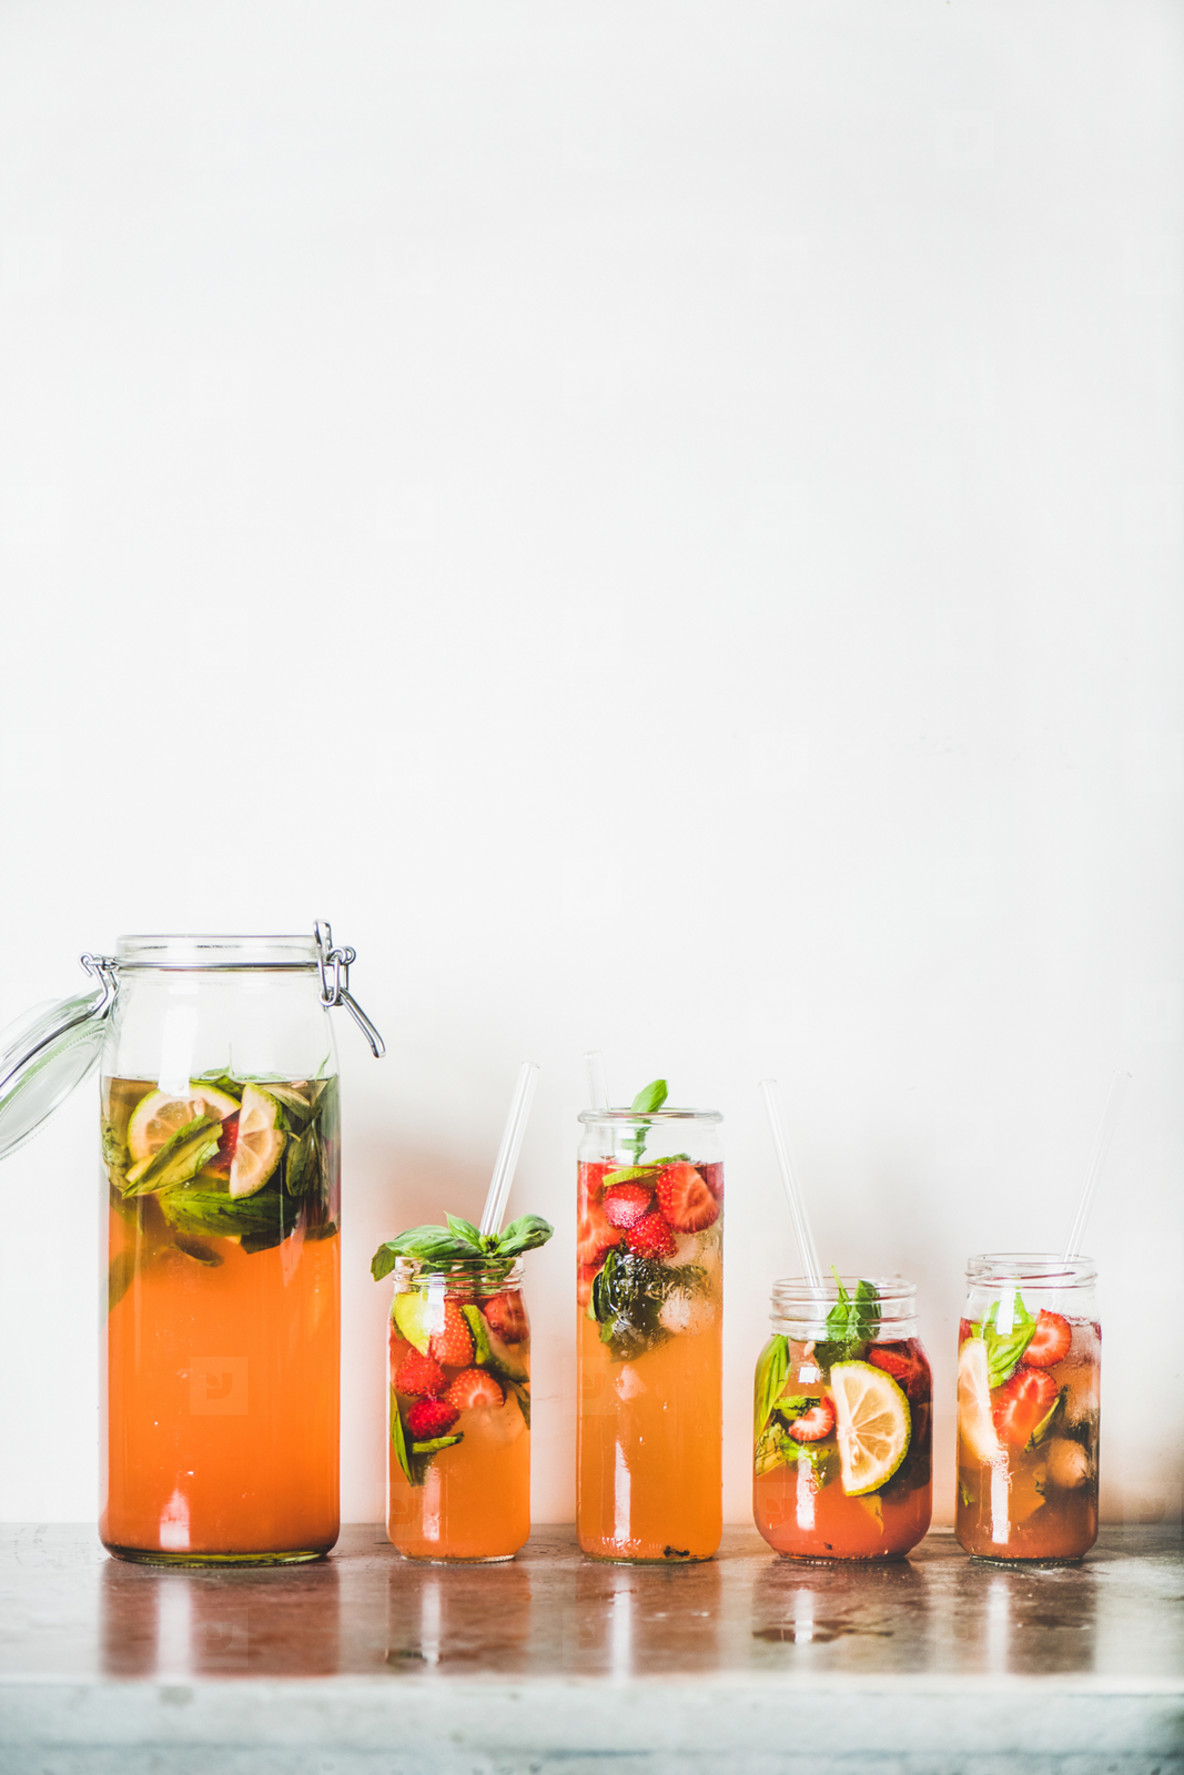 Homemade strawberry and basil lemonade or ice tea in glasses